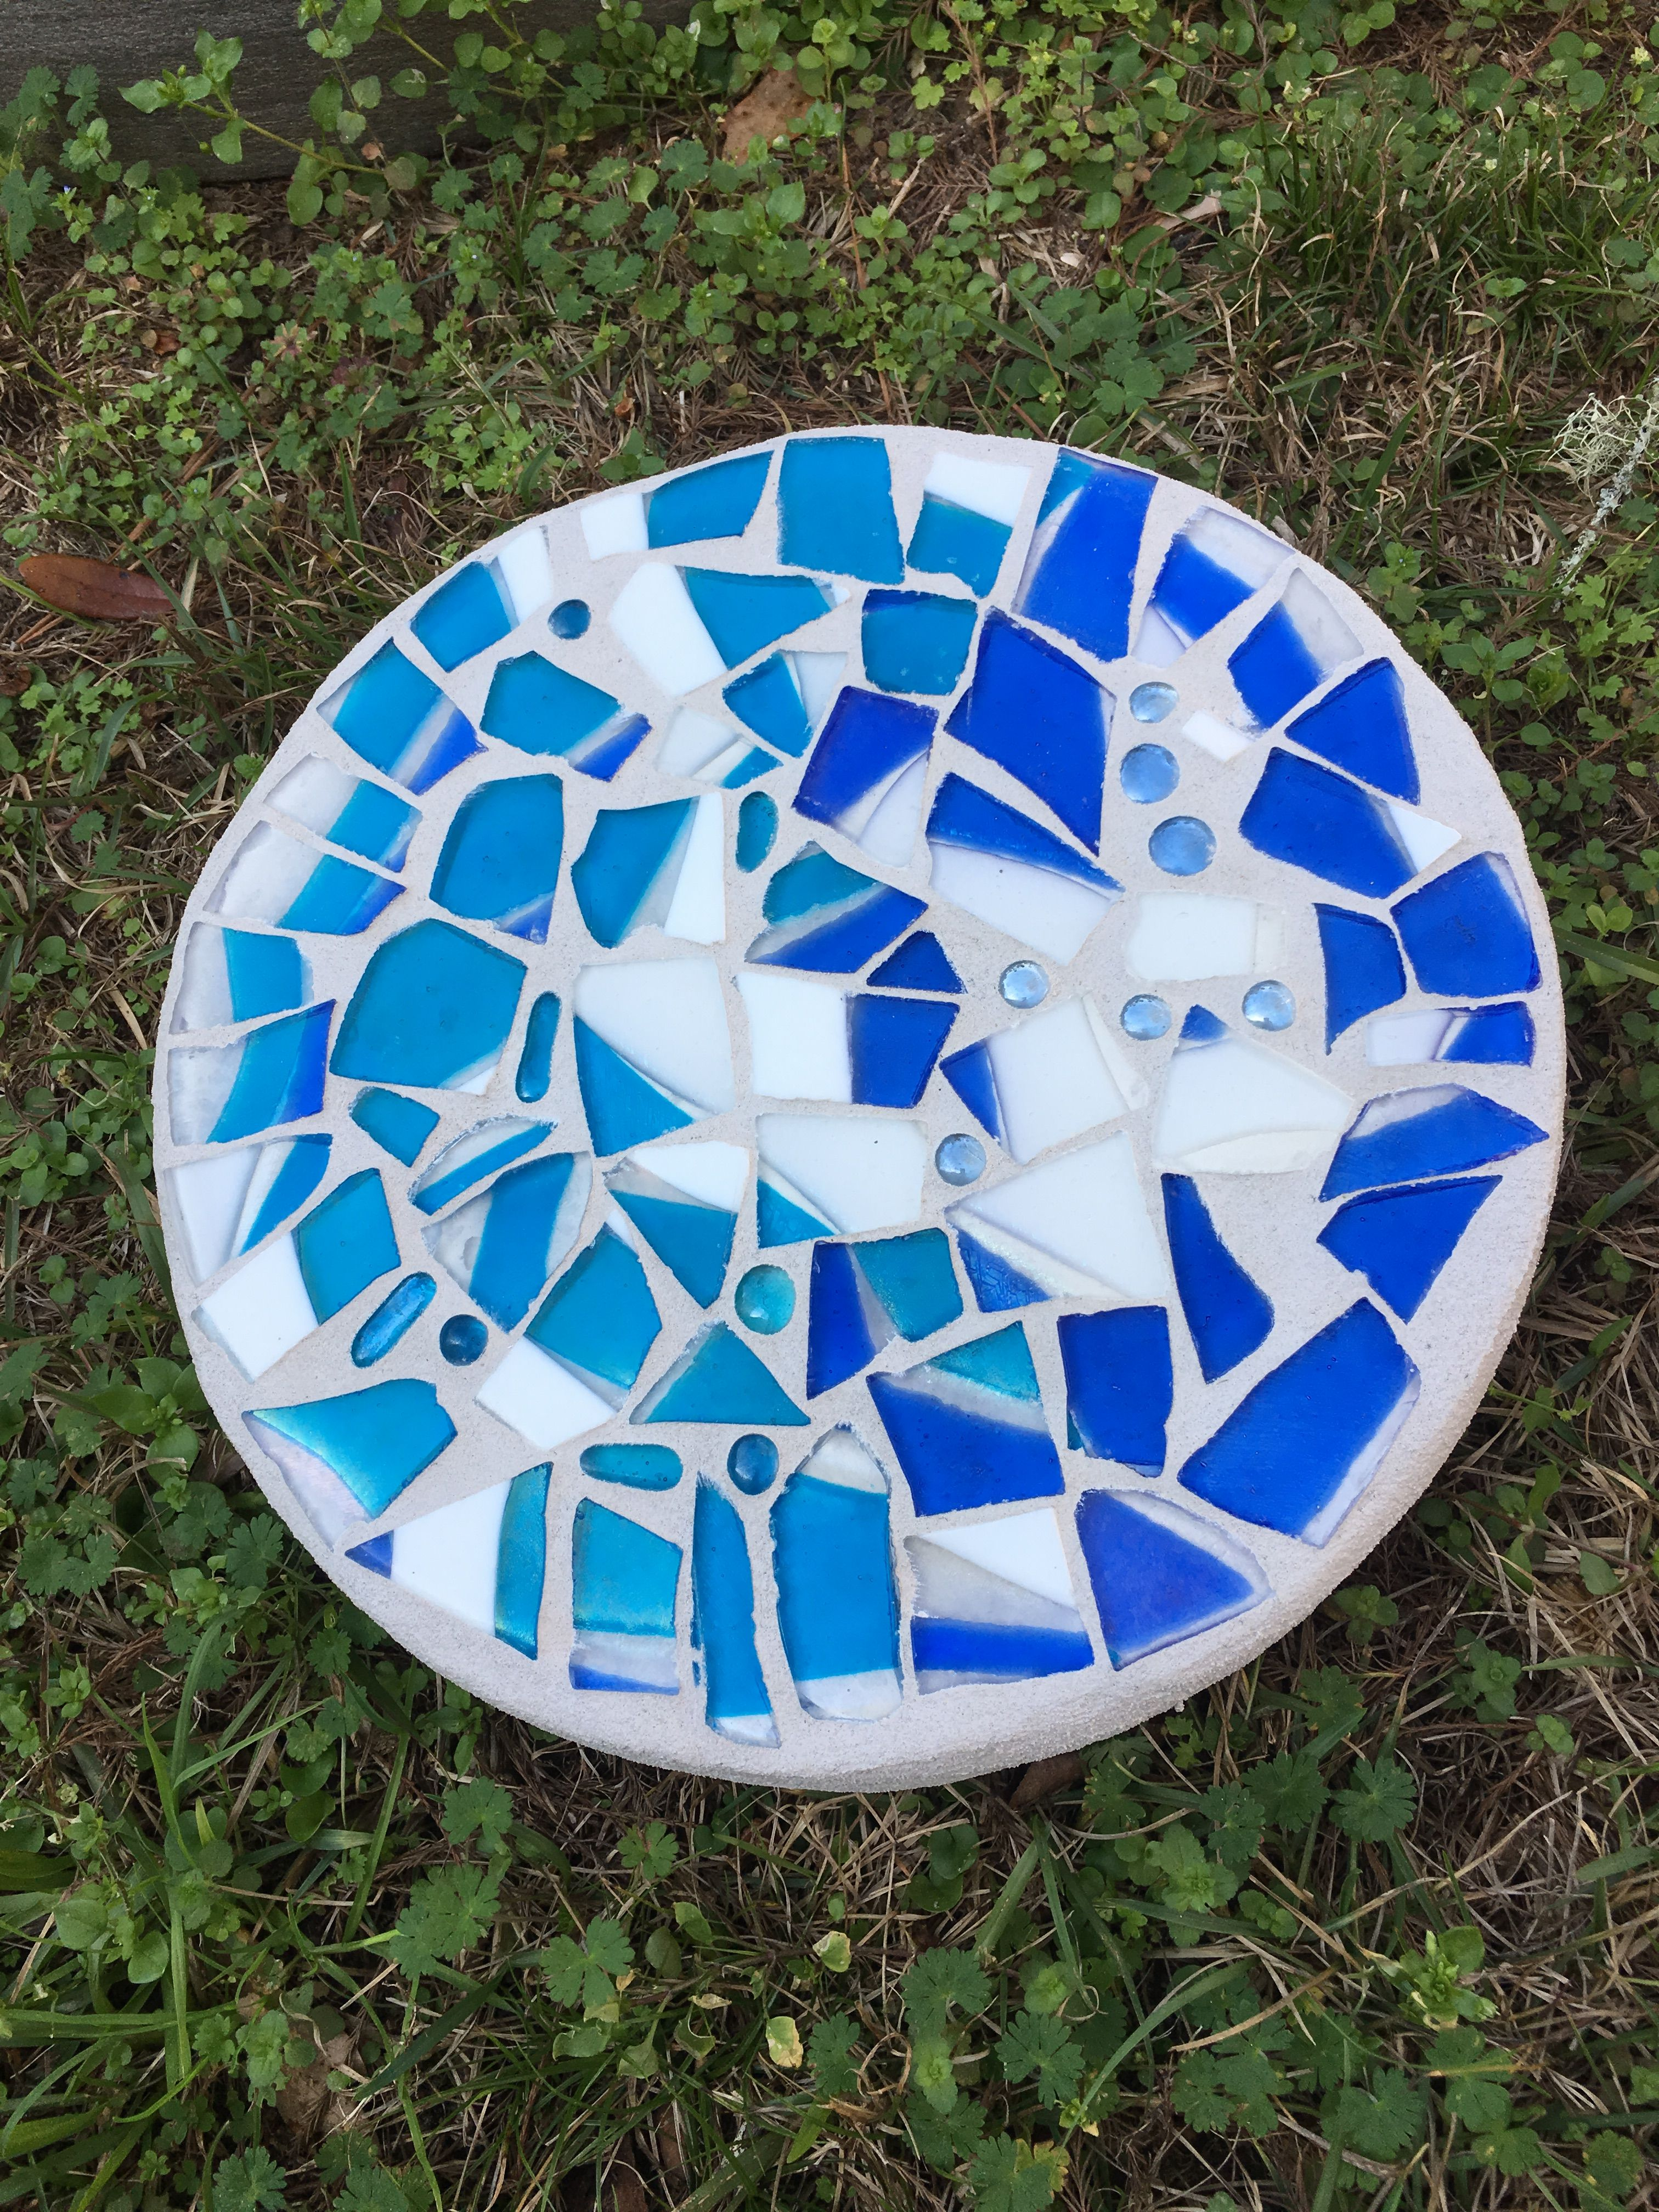 Round 12 inch mosaic stepping stone. Broken glass from